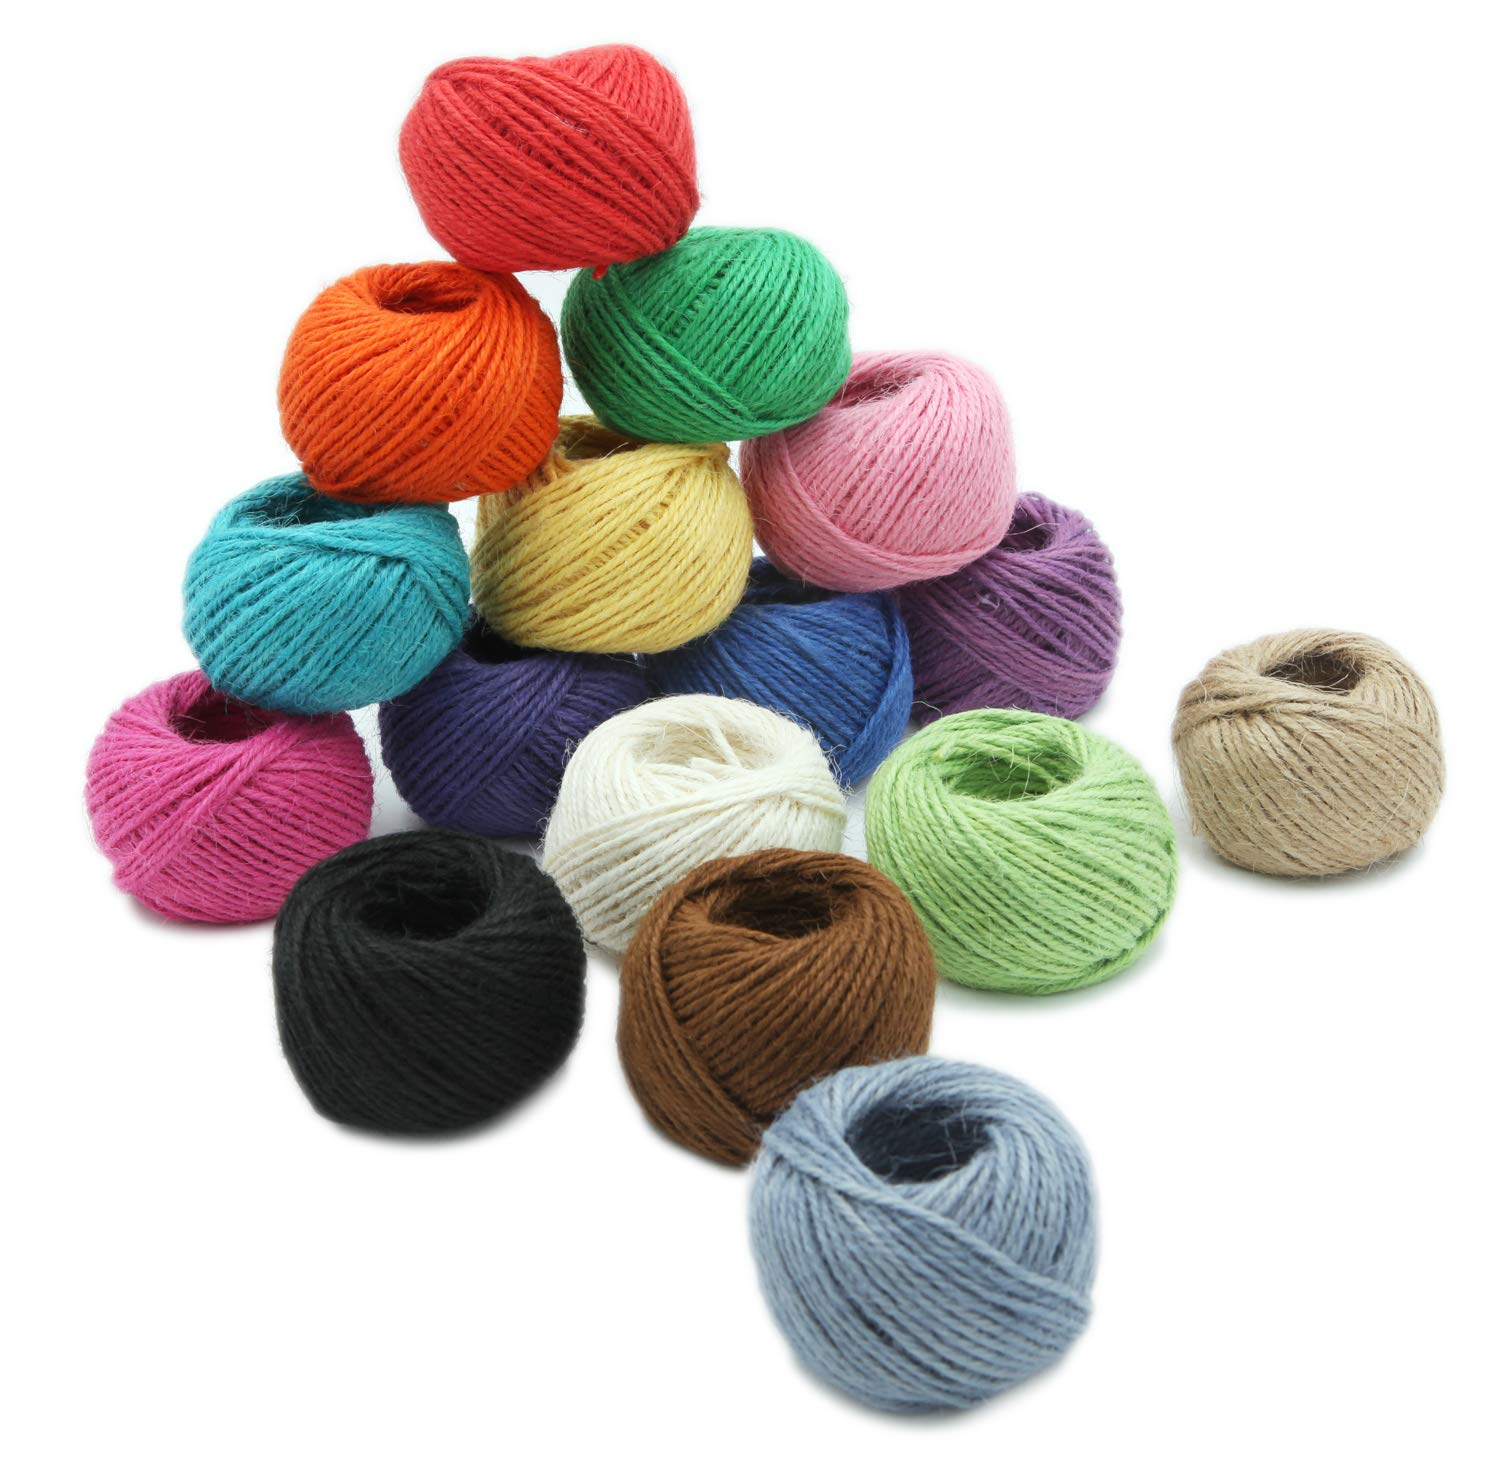 Jute Twine String//Rope for Crafts,Gardening,Wrapping,Packing Picture Hanging and Decoration 1312 Feets//437 Yards TELEXSUN 3 PLY,2MM,16 Rolls,82 Feets per Roll